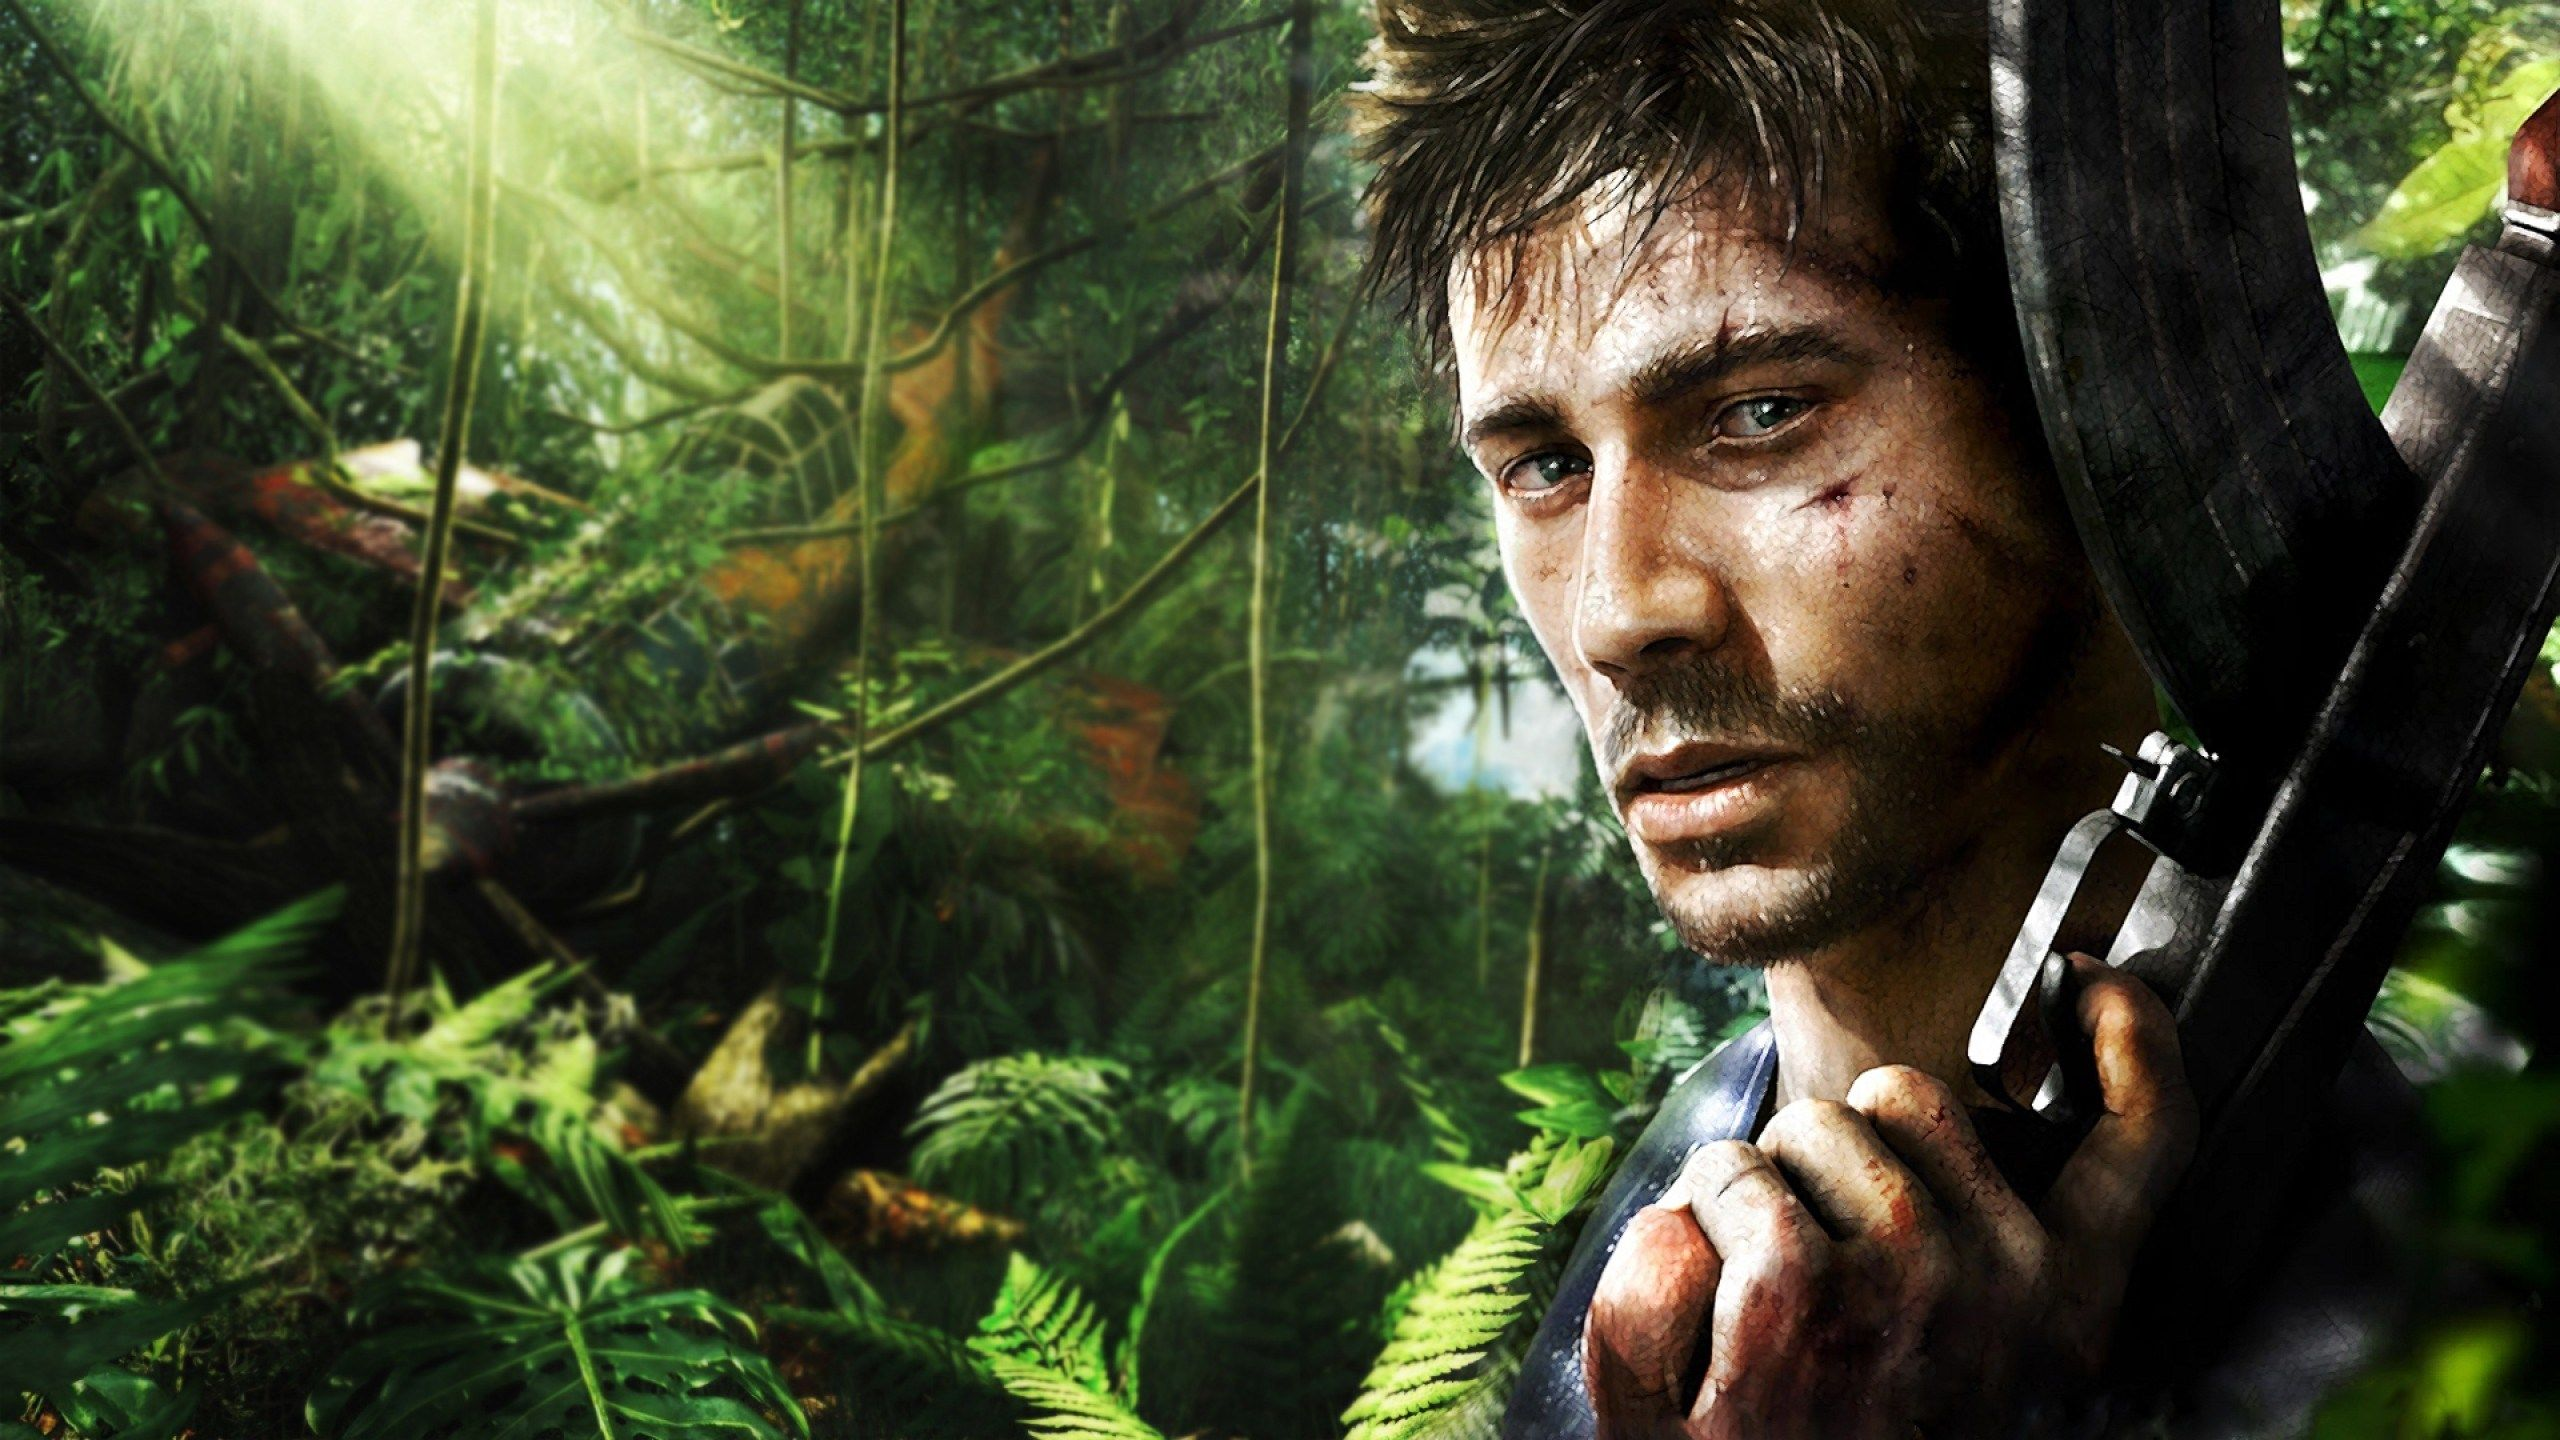 2560x1440 High Resolution Wallpaper Far Cry 3 With Images Far Cry 3 Gaming Wallpapers